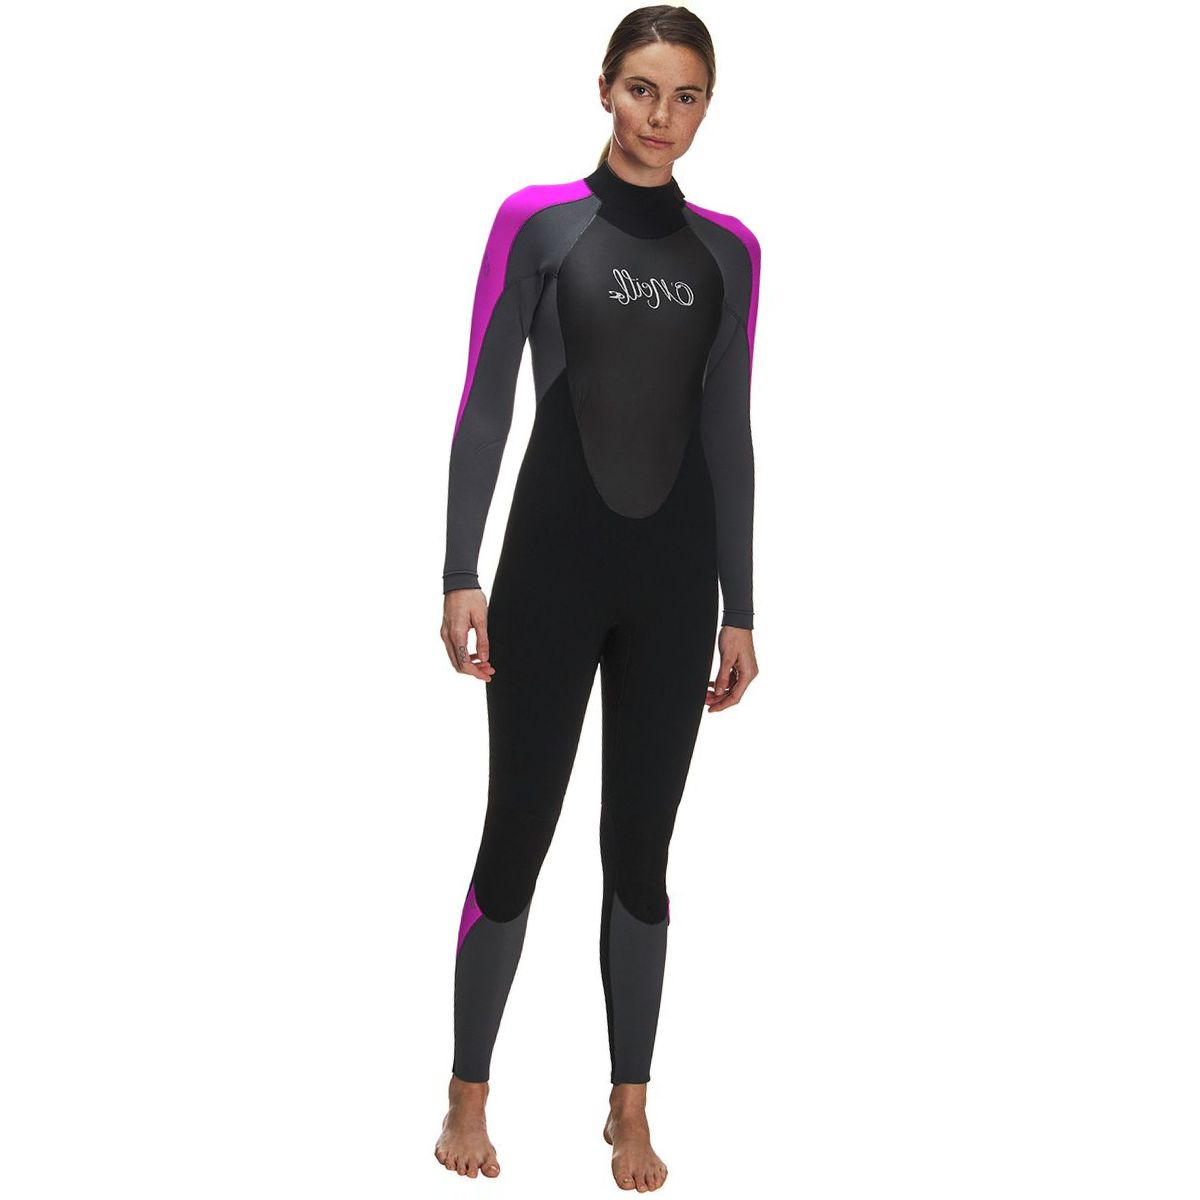 O'Neill Epic 4/3mm Back-Zip Full Suit - Women's